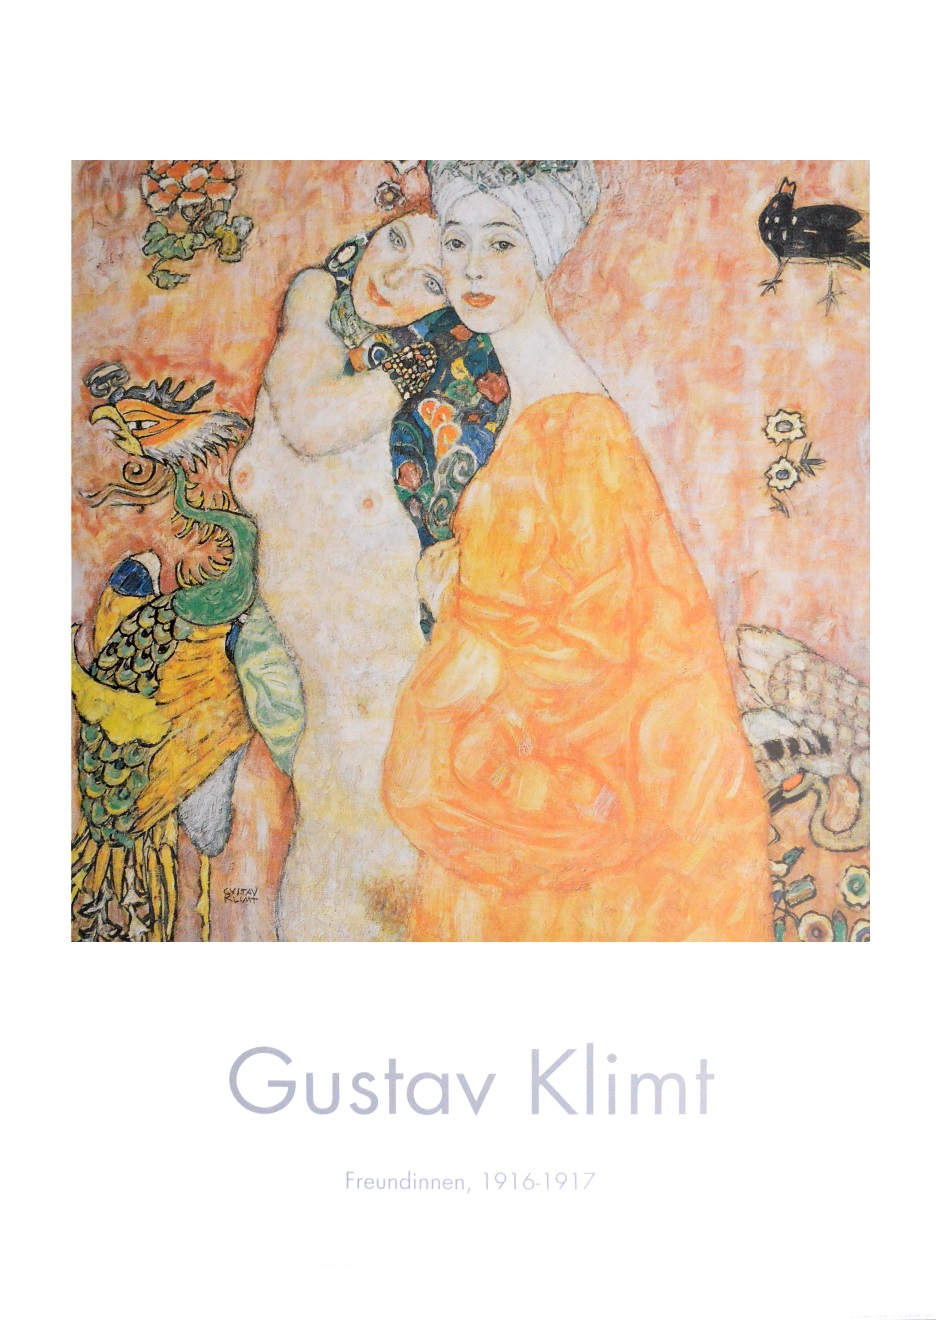 gustav klimt freundinnen poster kunstdruck bild 100x70cm. Black Bedroom Furniture Sets. Home Design Ideas